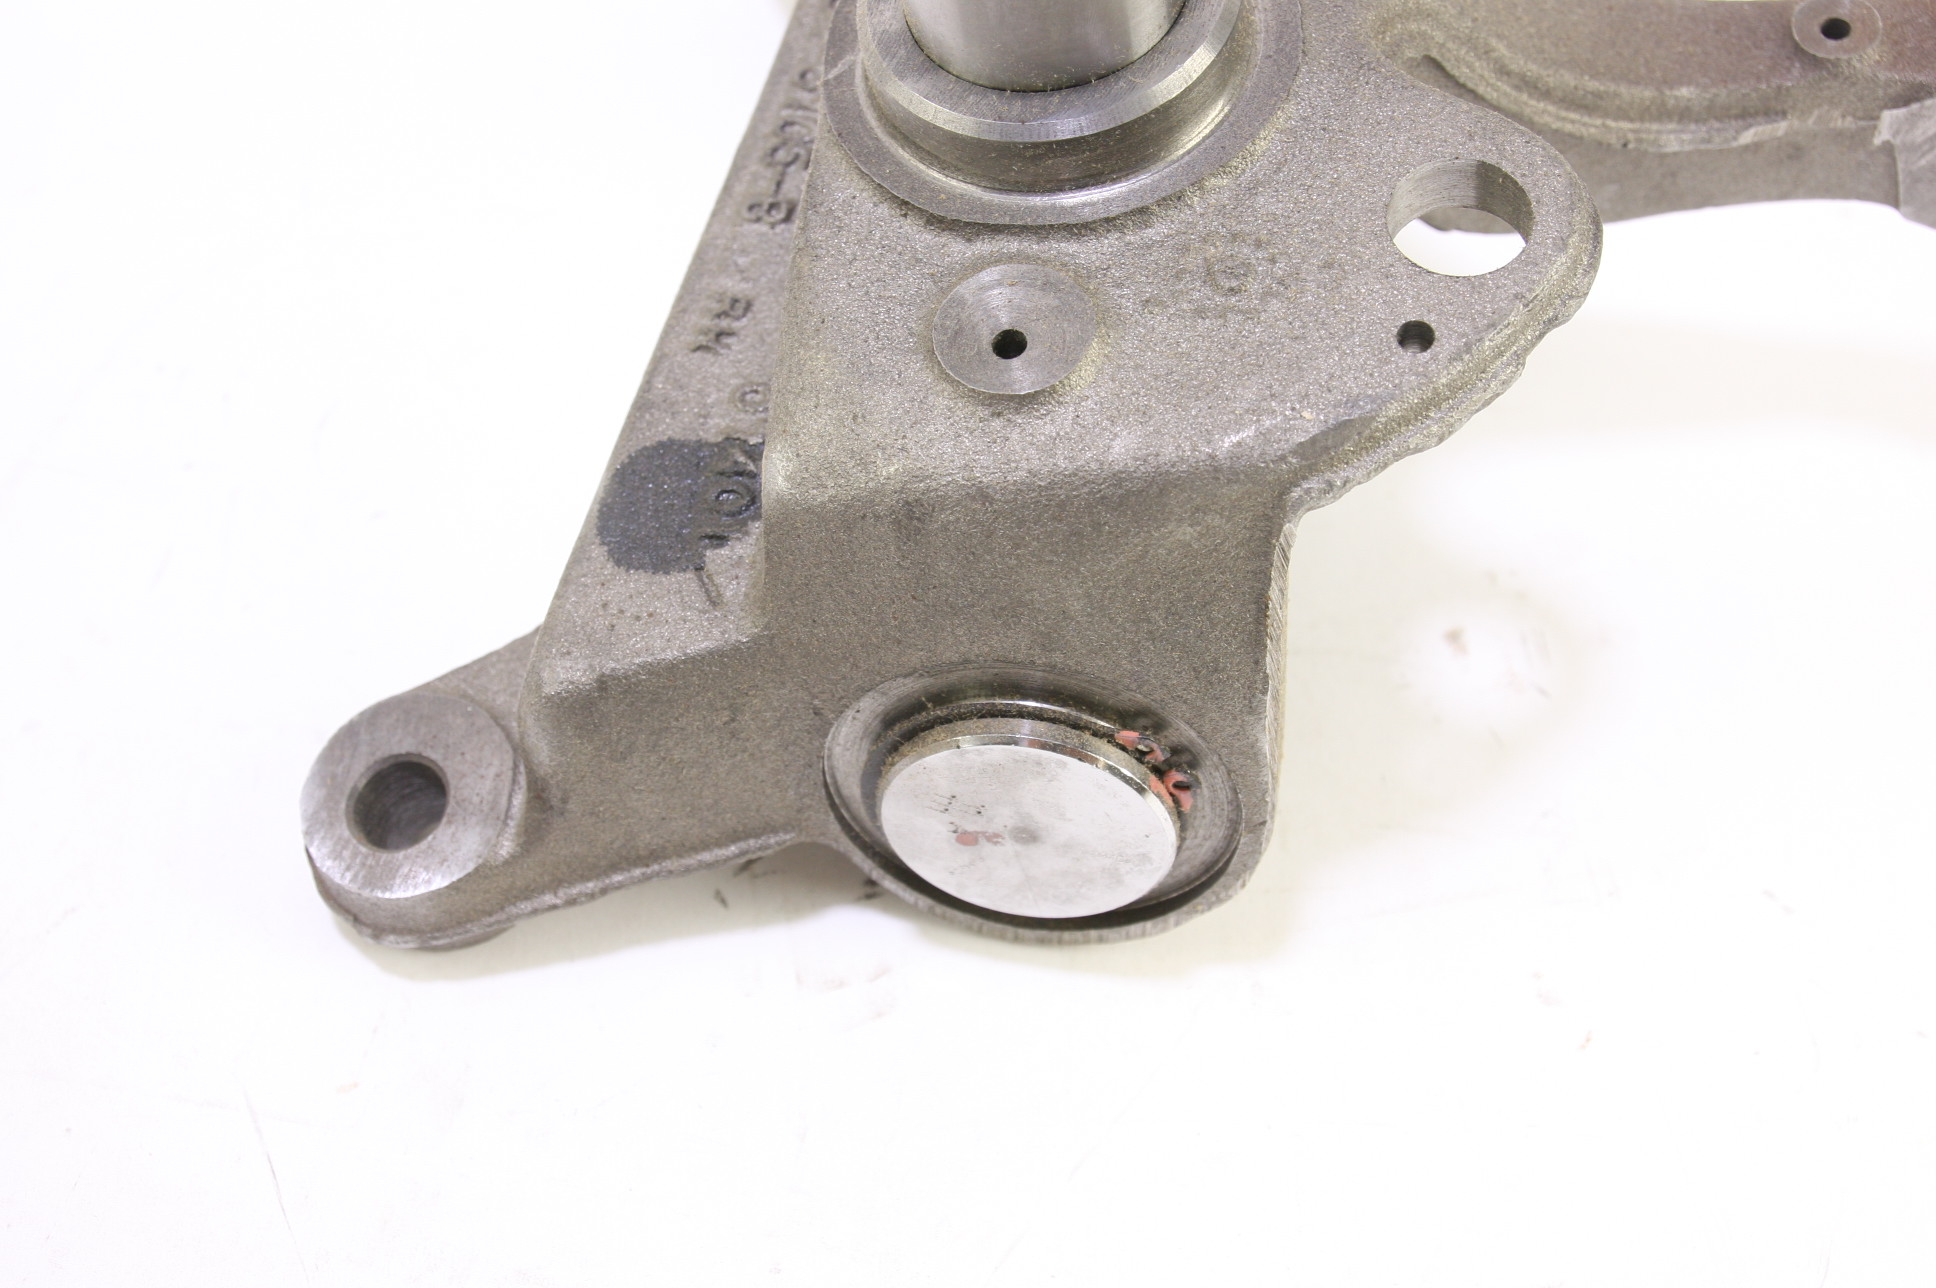 *New OEM F81Z3105BA Ford Front Suspension Steering Knuckle Spindle Free Shipping - image 5